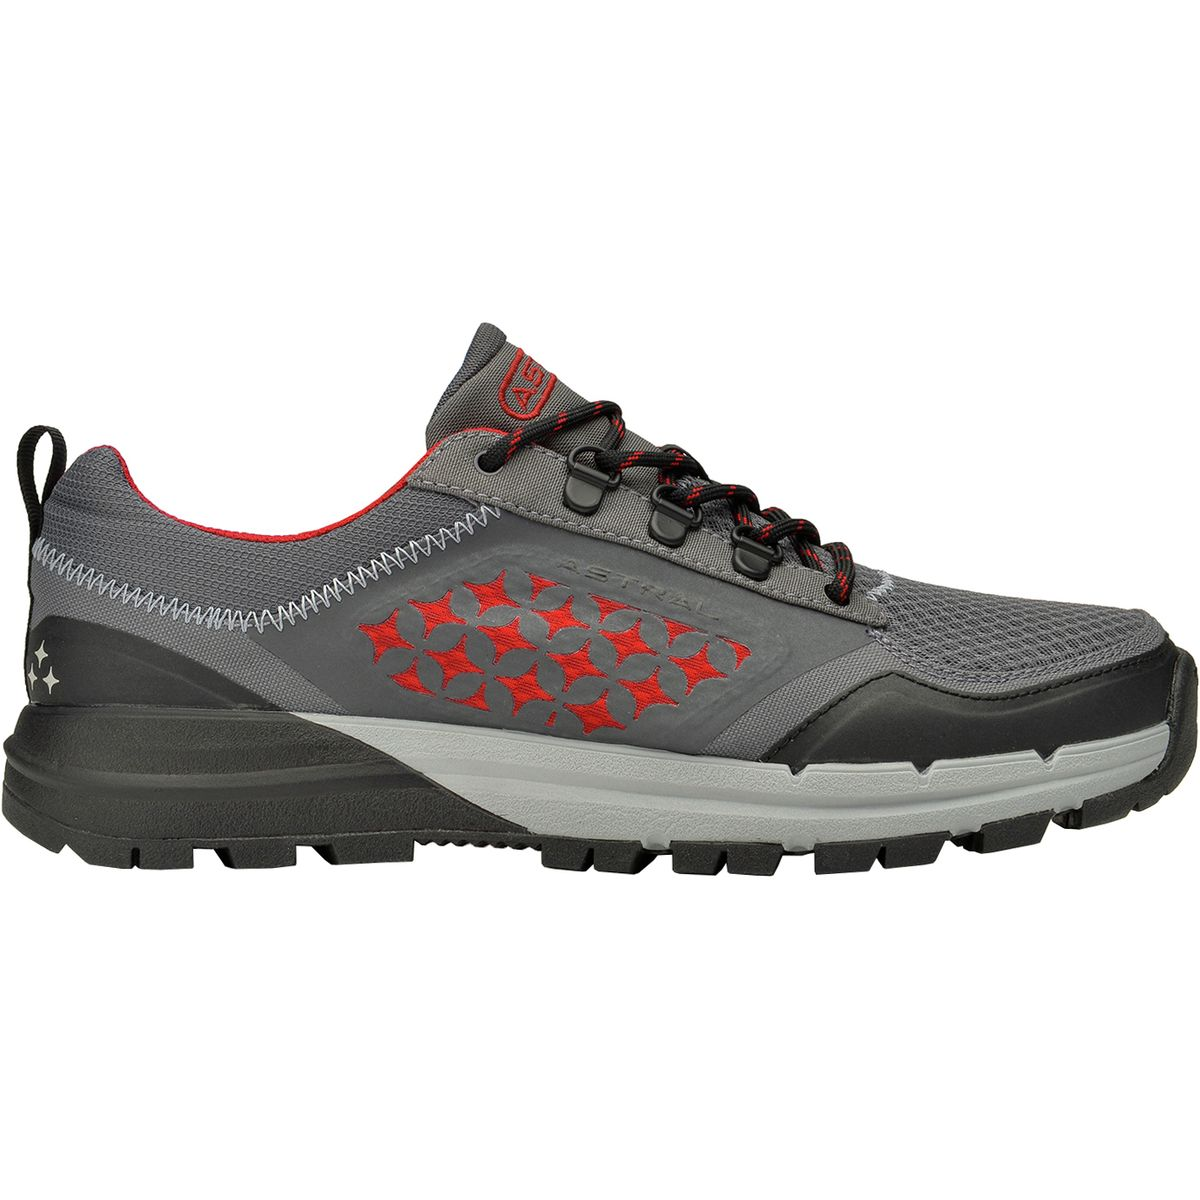 f15b8ea5d702 Details about Astral TR1 Trek Shoes Mens Charcoal Grey